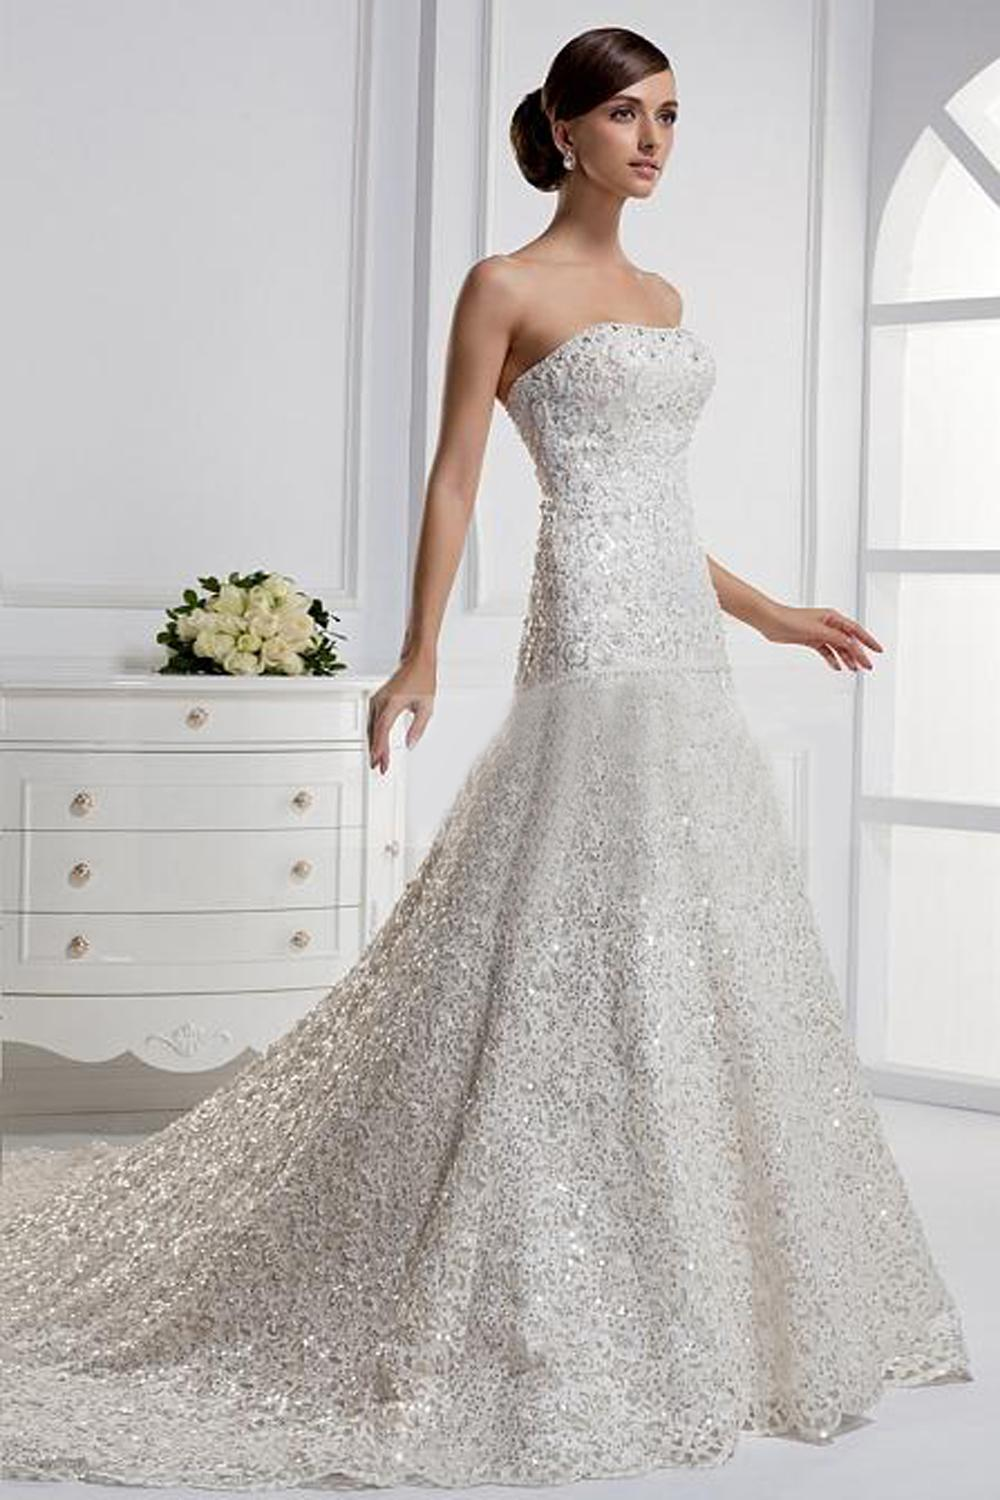 discount real sample wedding dress stunning mermaid strapless chapel train best designer wedding dresses classic lace wedding dresses from movvyhongkong